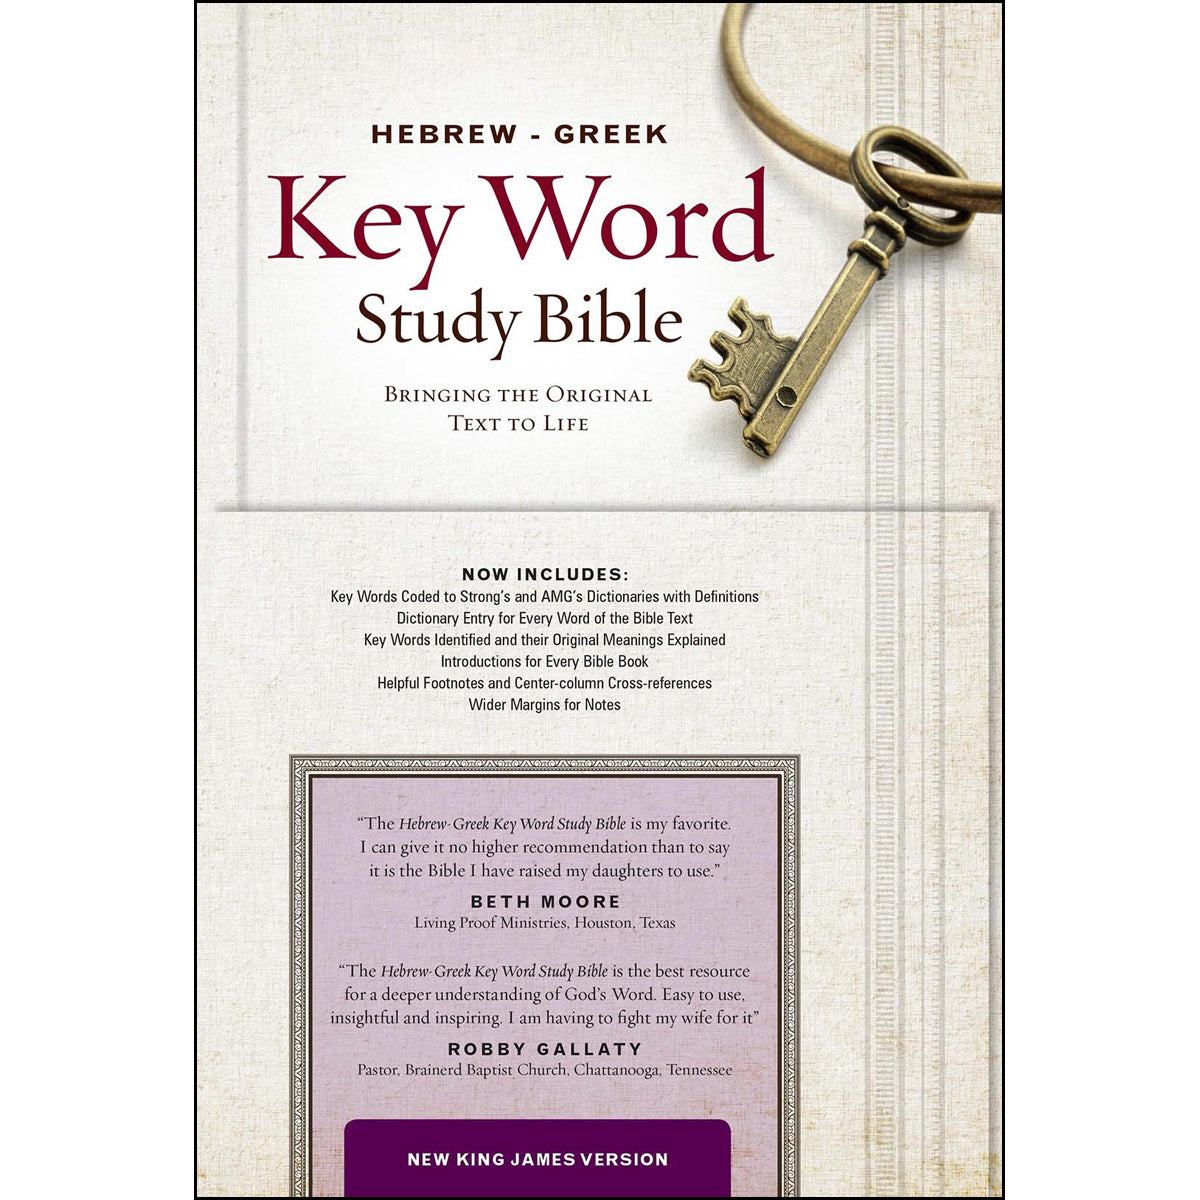 NKJV Hebrew / Greek Key Word Study Bible (Hardcover)